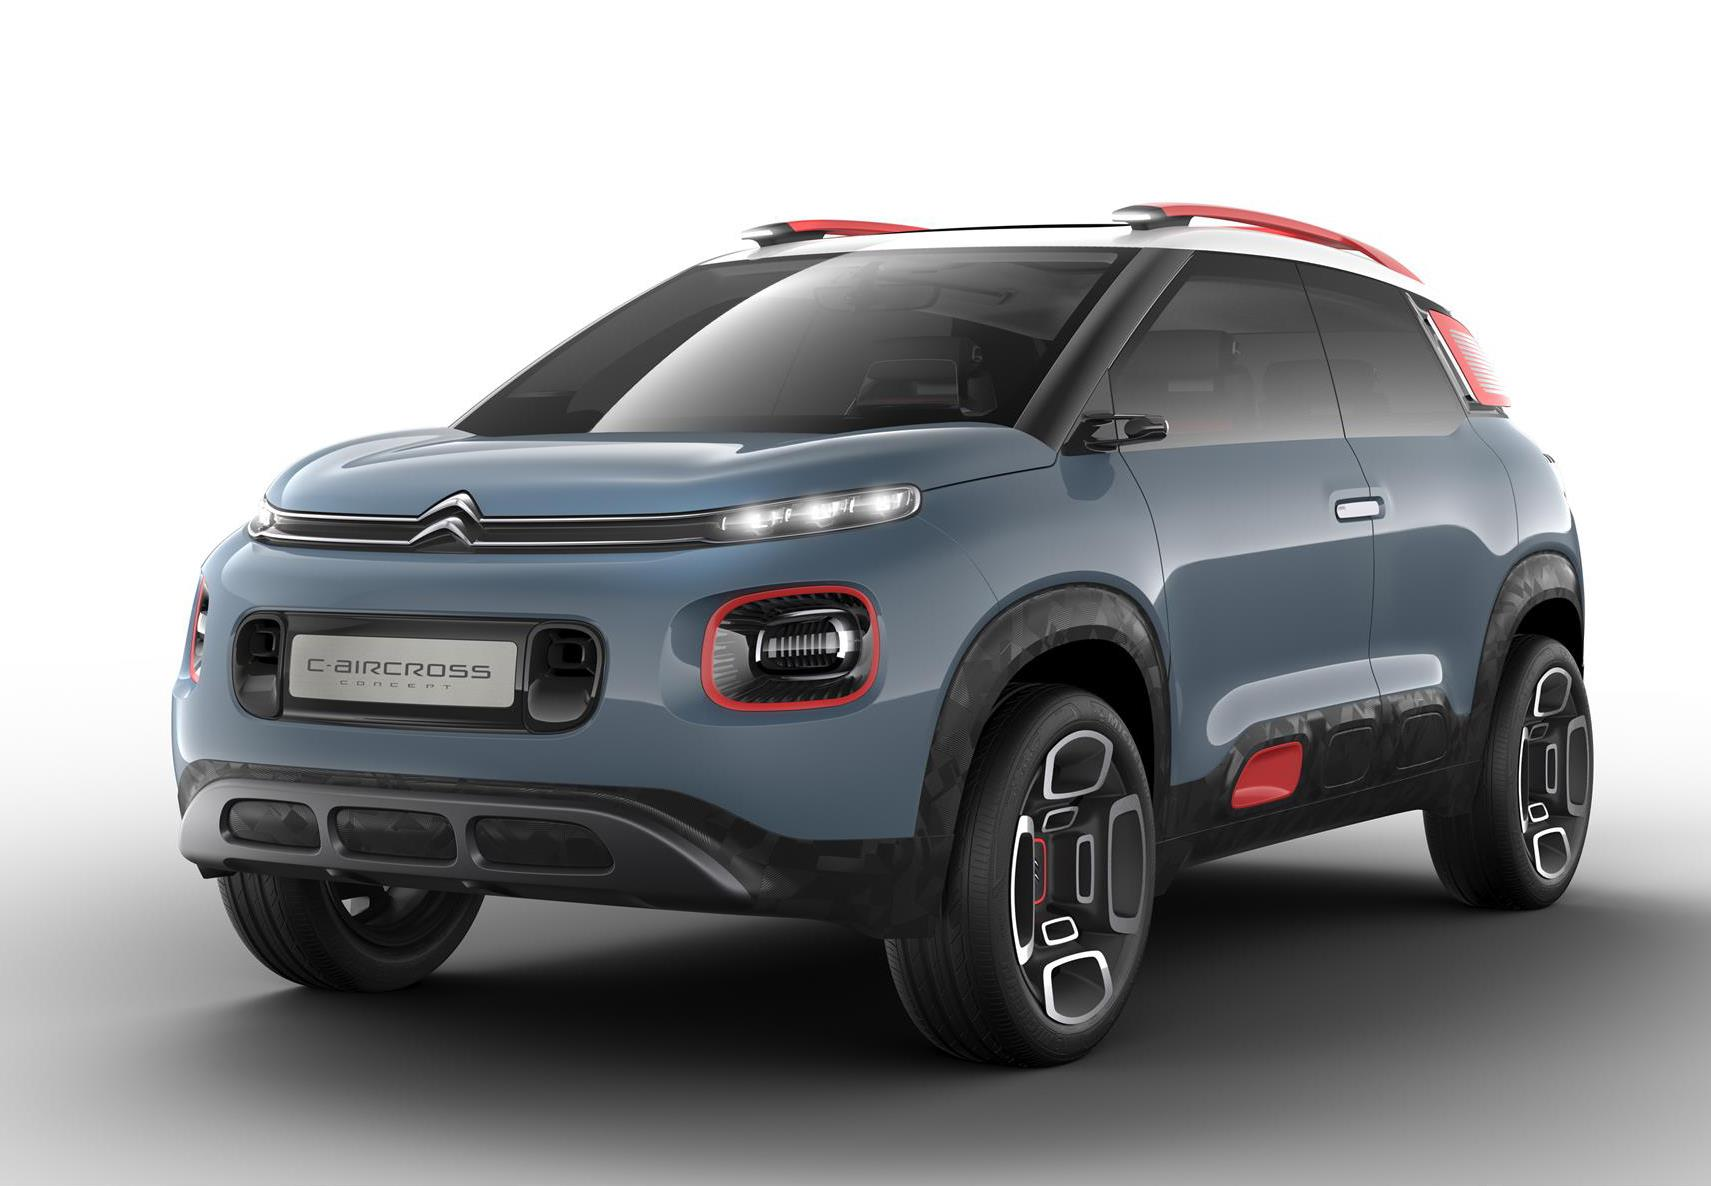 2017 citroen c aircross concept news and information research and history. Black Bedroom Furniture Sets. Home Design Ideas